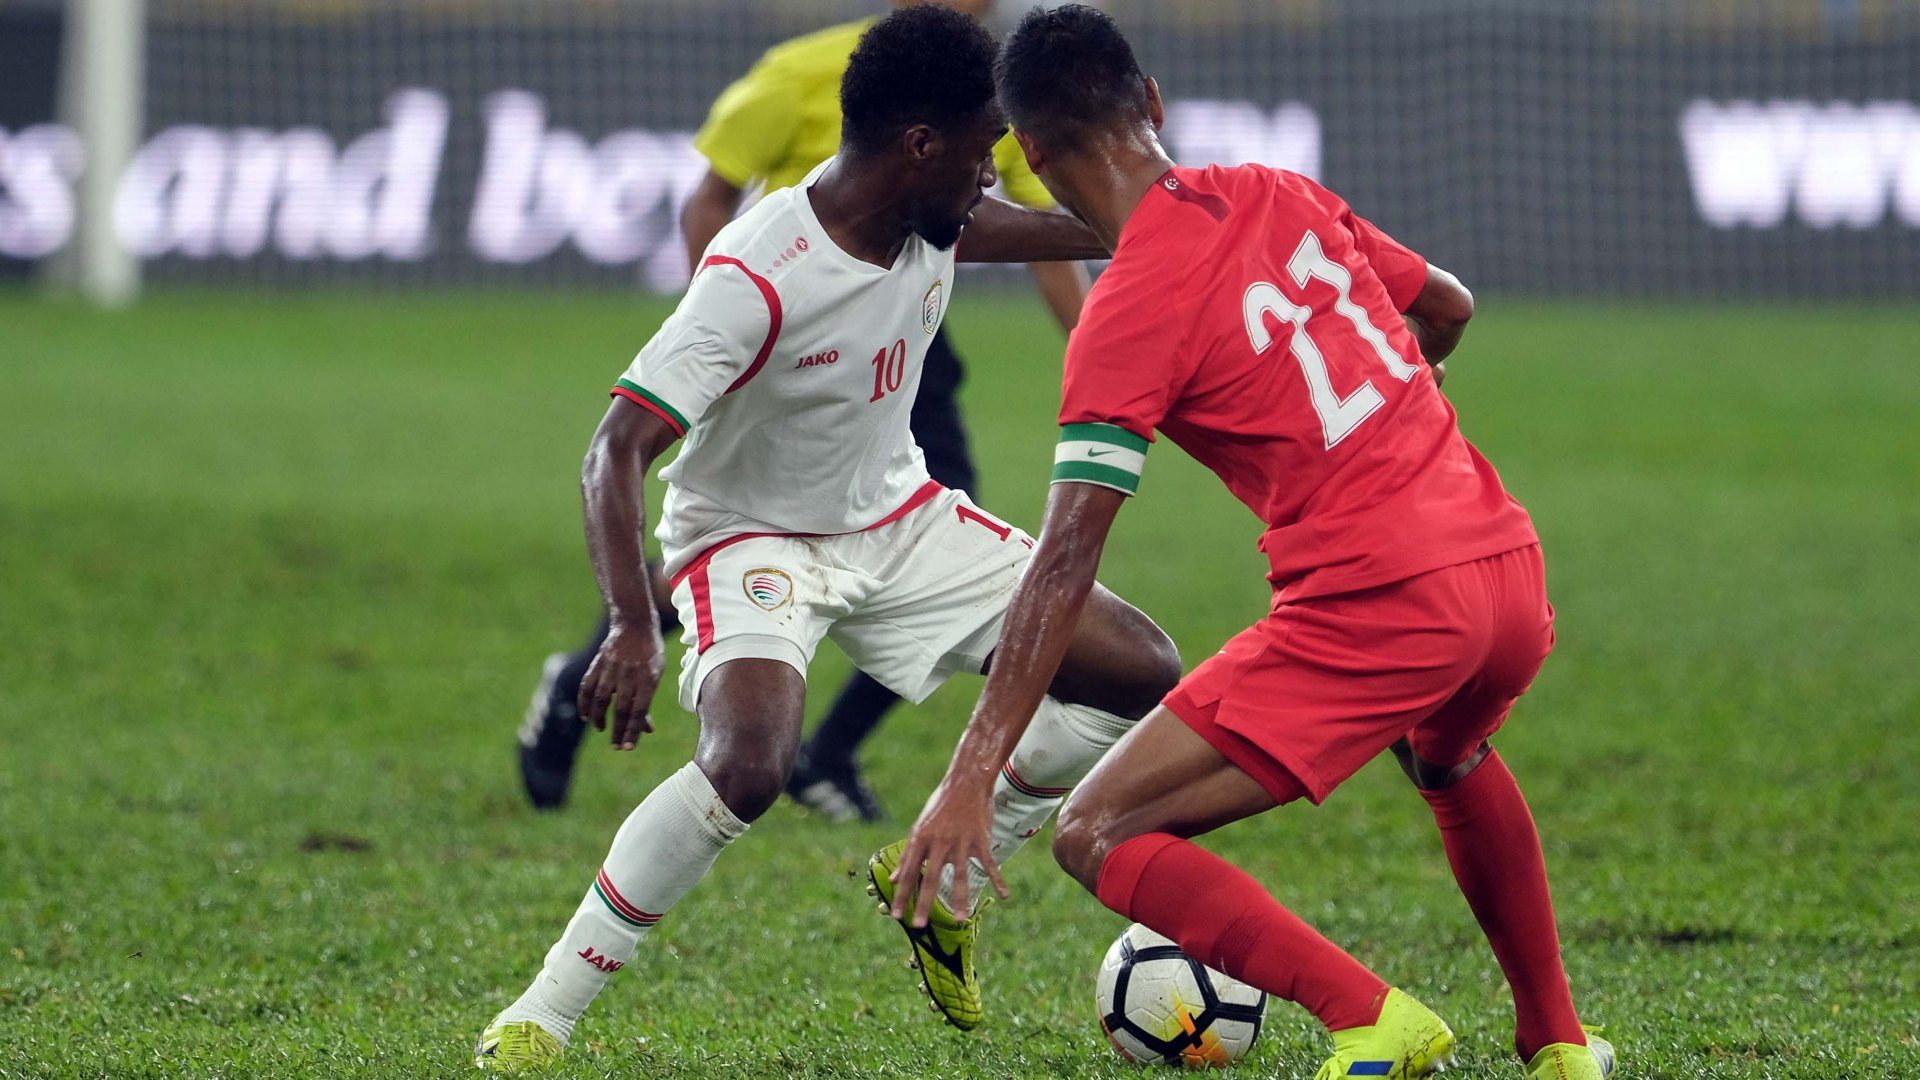 Singapore's U18 end 2020 AFC U19 Championship Qualifying campaign by losing their final game to Myanmar 8-0